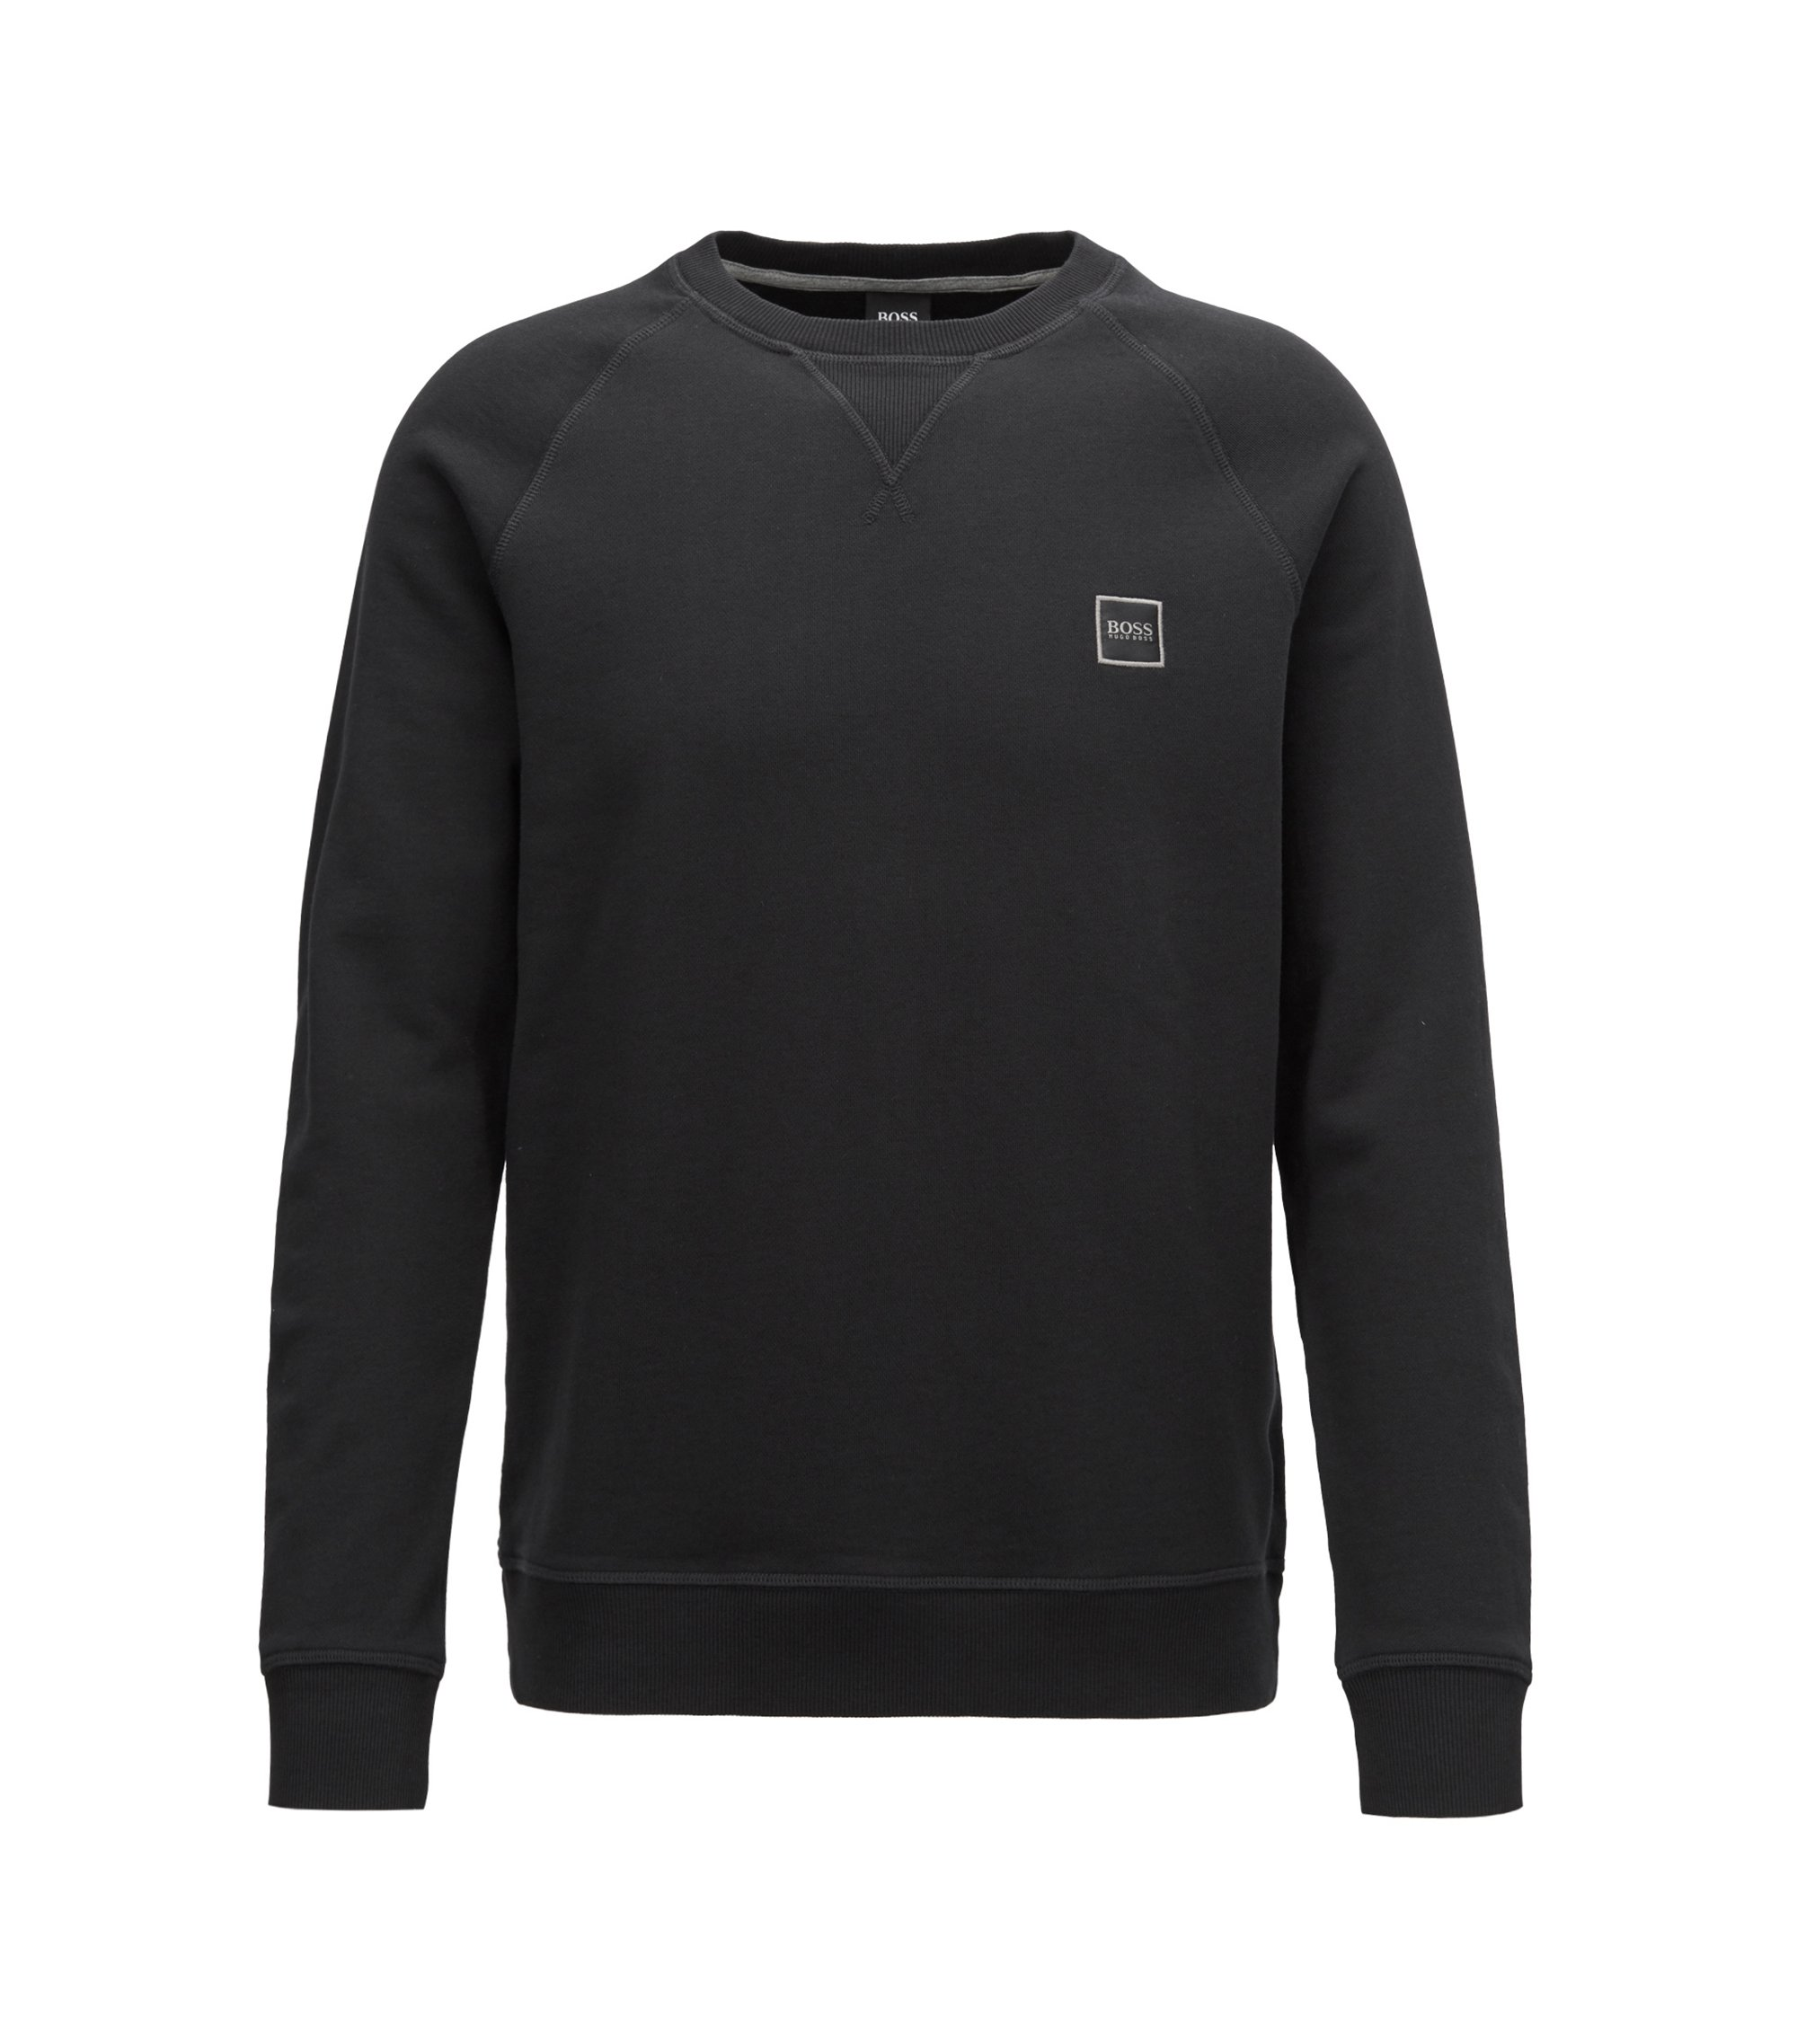 French-terry sweatshirt with logo patch, Black